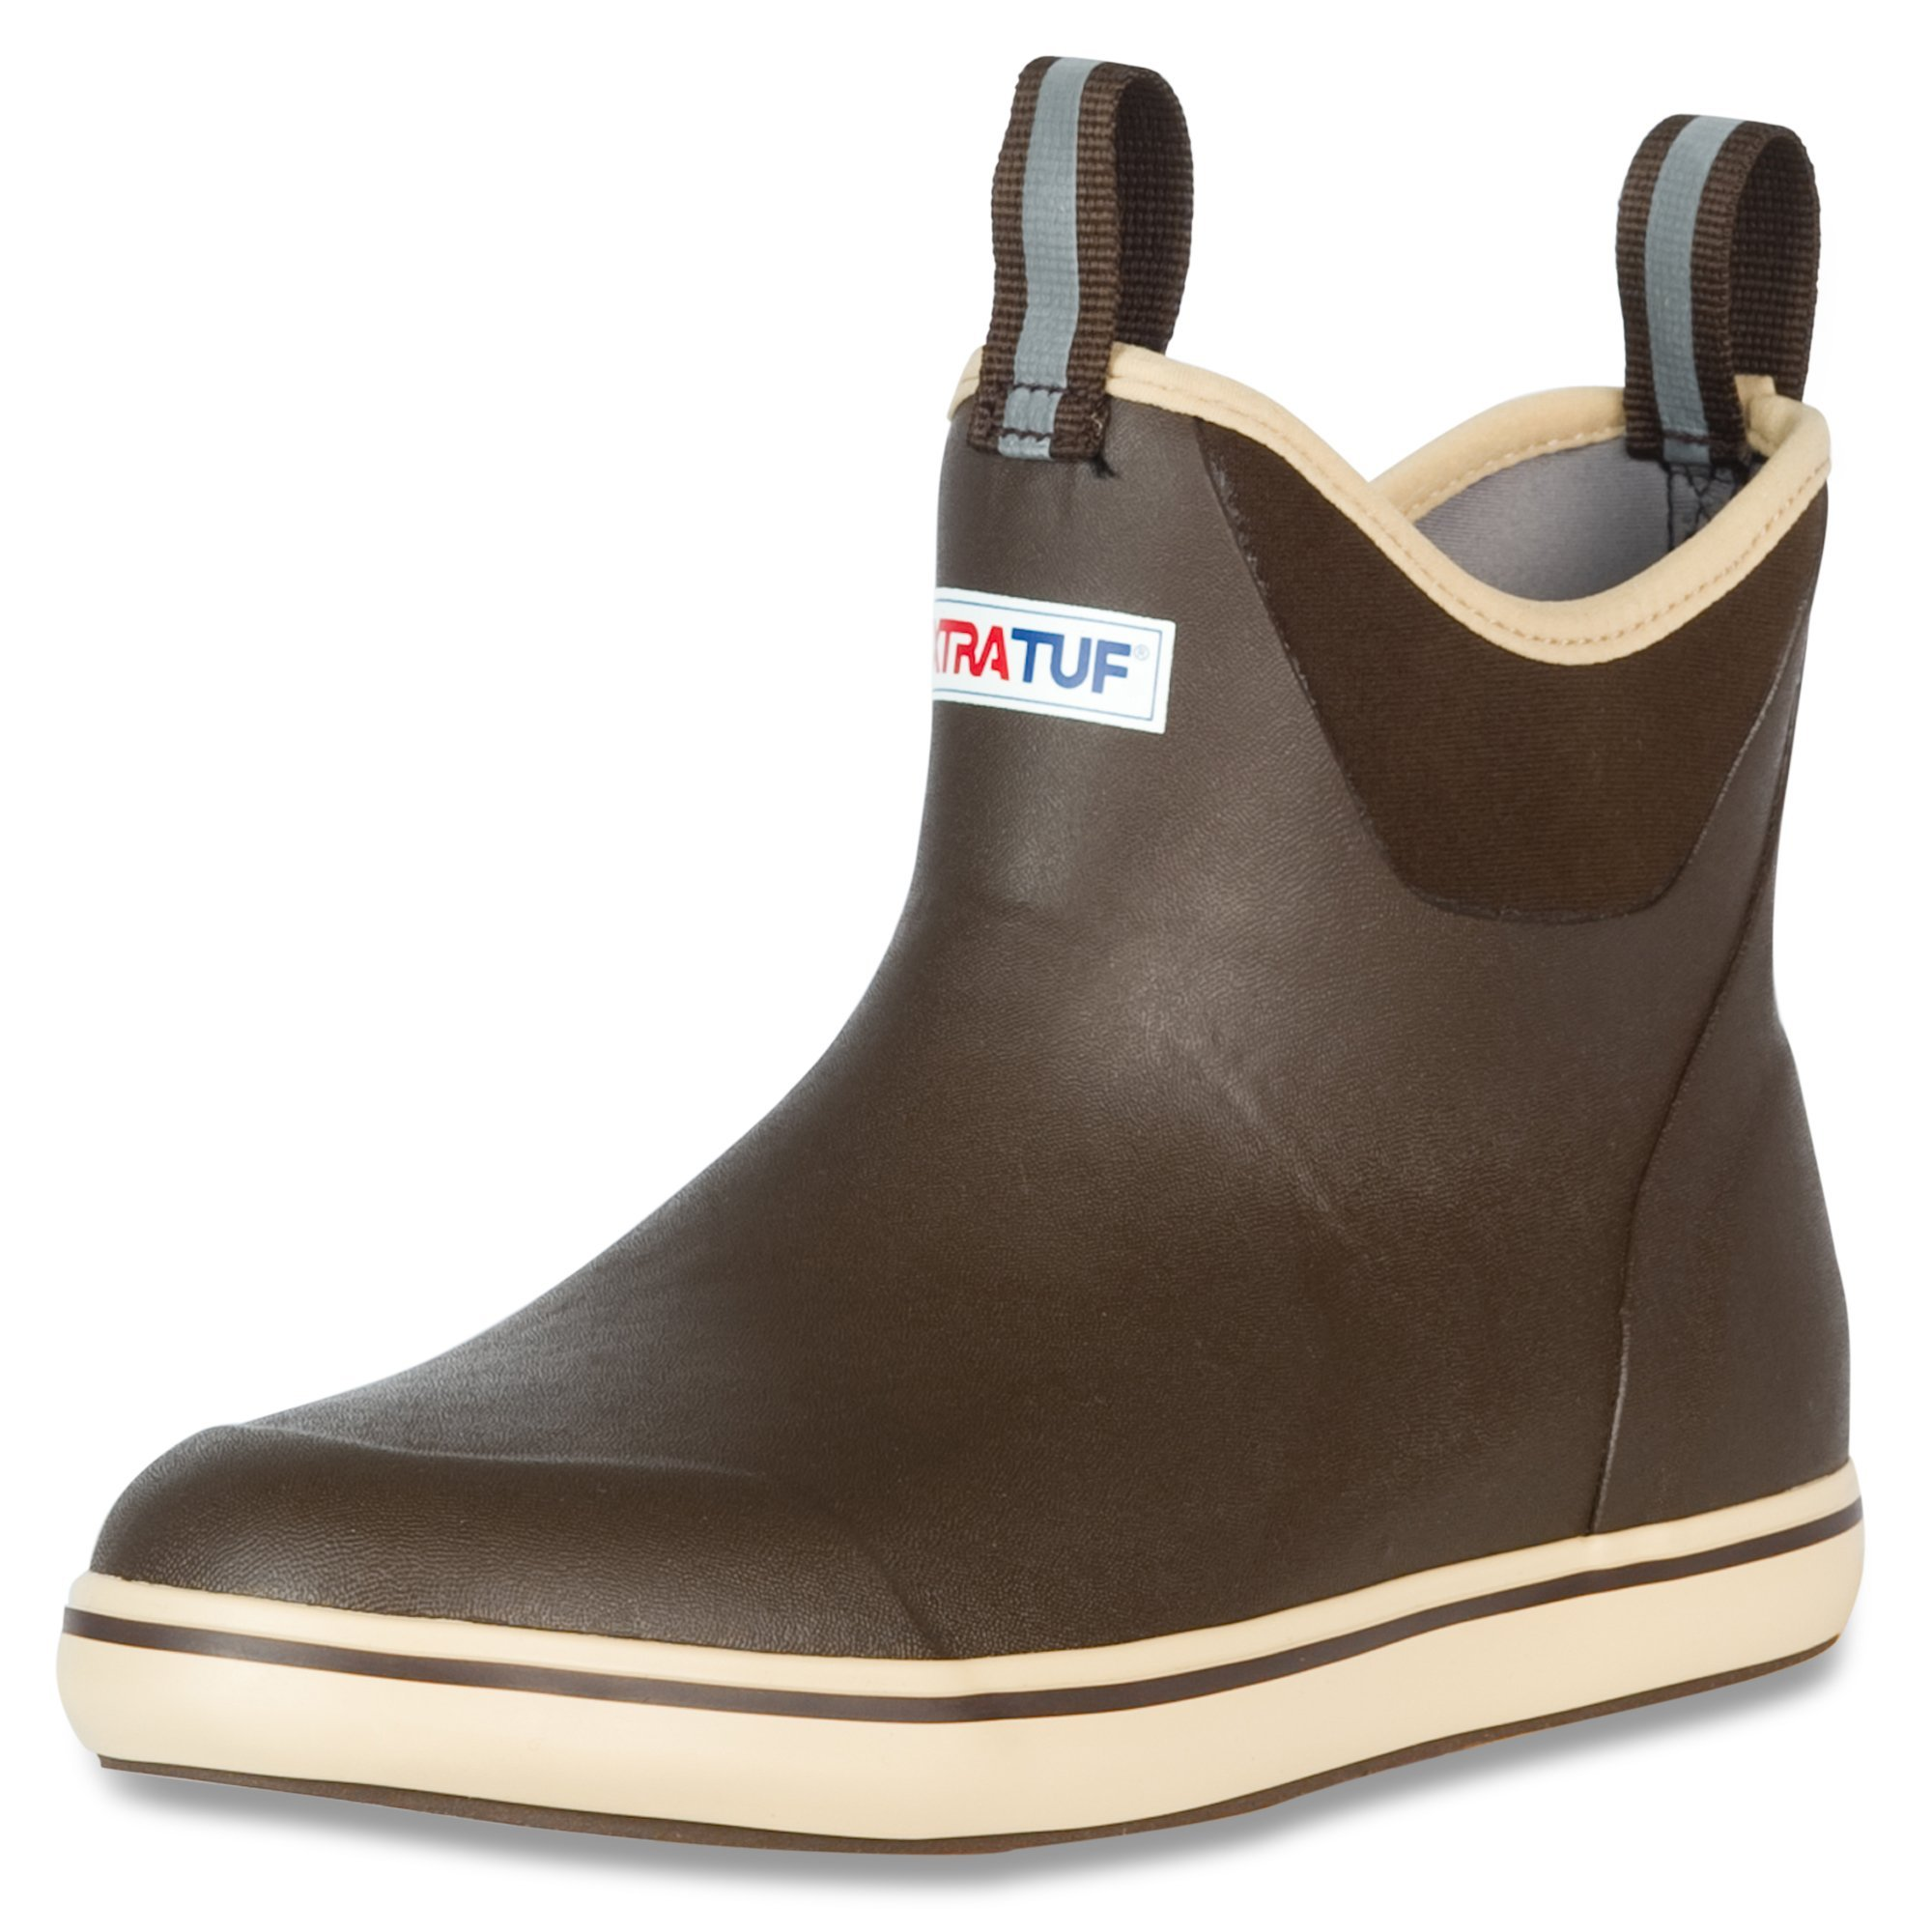 XTRATUF Performance Series 12'' Men's Full Rubber Ankle Deck Boots, Chocolate & Tan (22734) (Renewed)